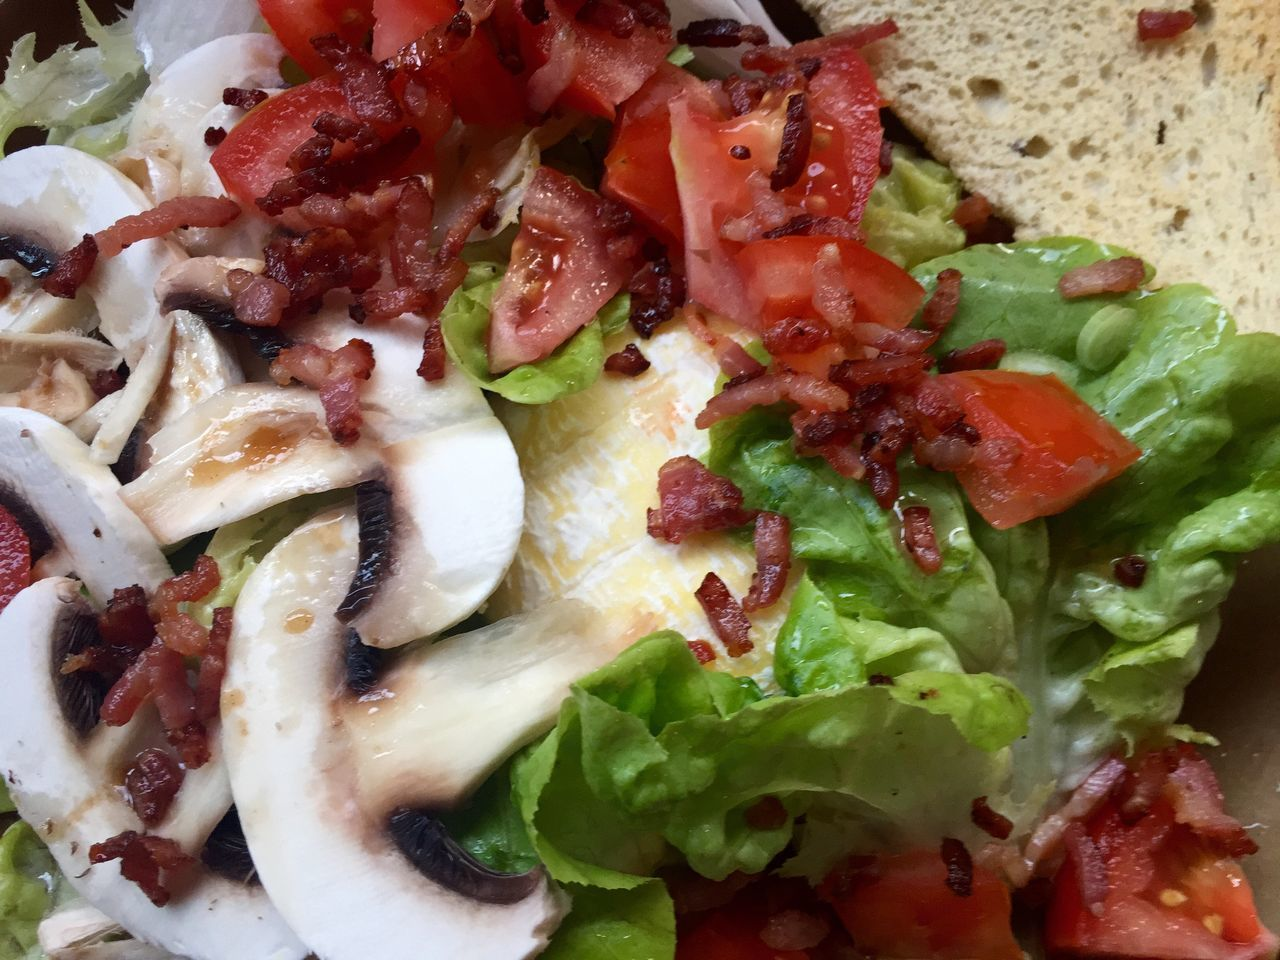 Salad Mushrooms Tomatoes Diced Bacon Goatcheese